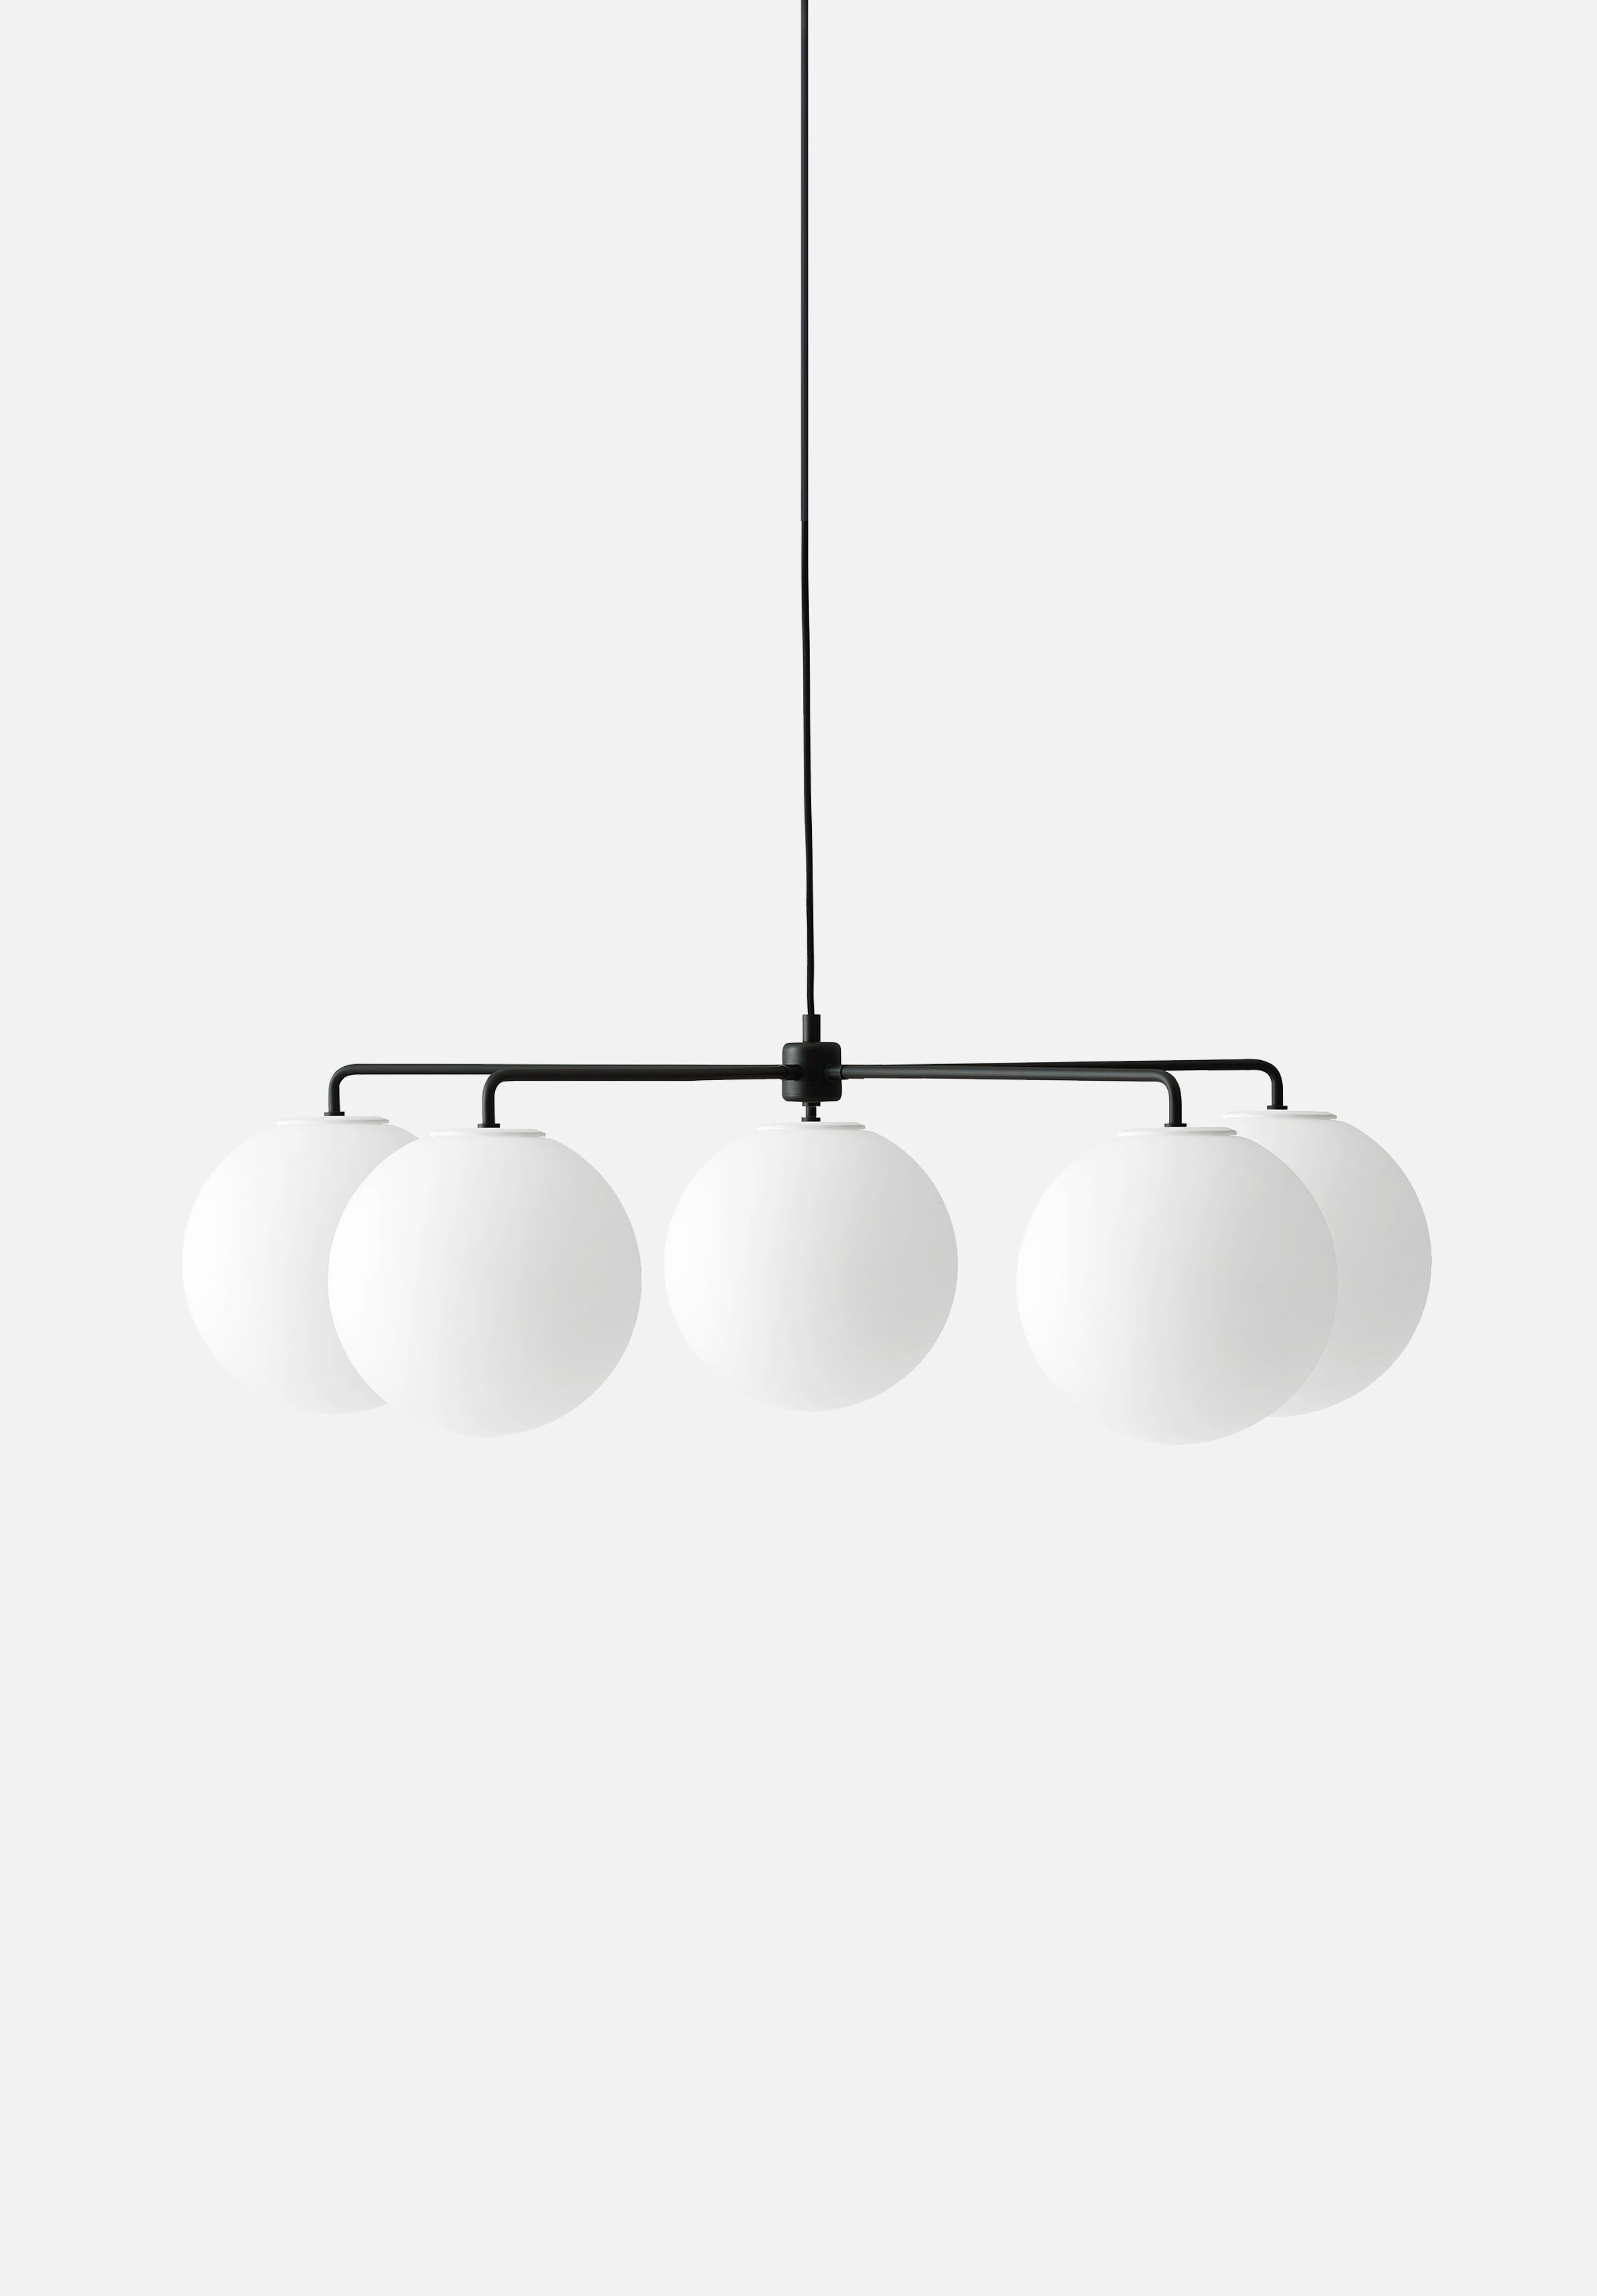 Tribeca Chambers Chandelier — 96cm-Søren Rose-Menu-Black-No Bulbs-danish-interior-furniture-denmark-Average-design-toronto-canada